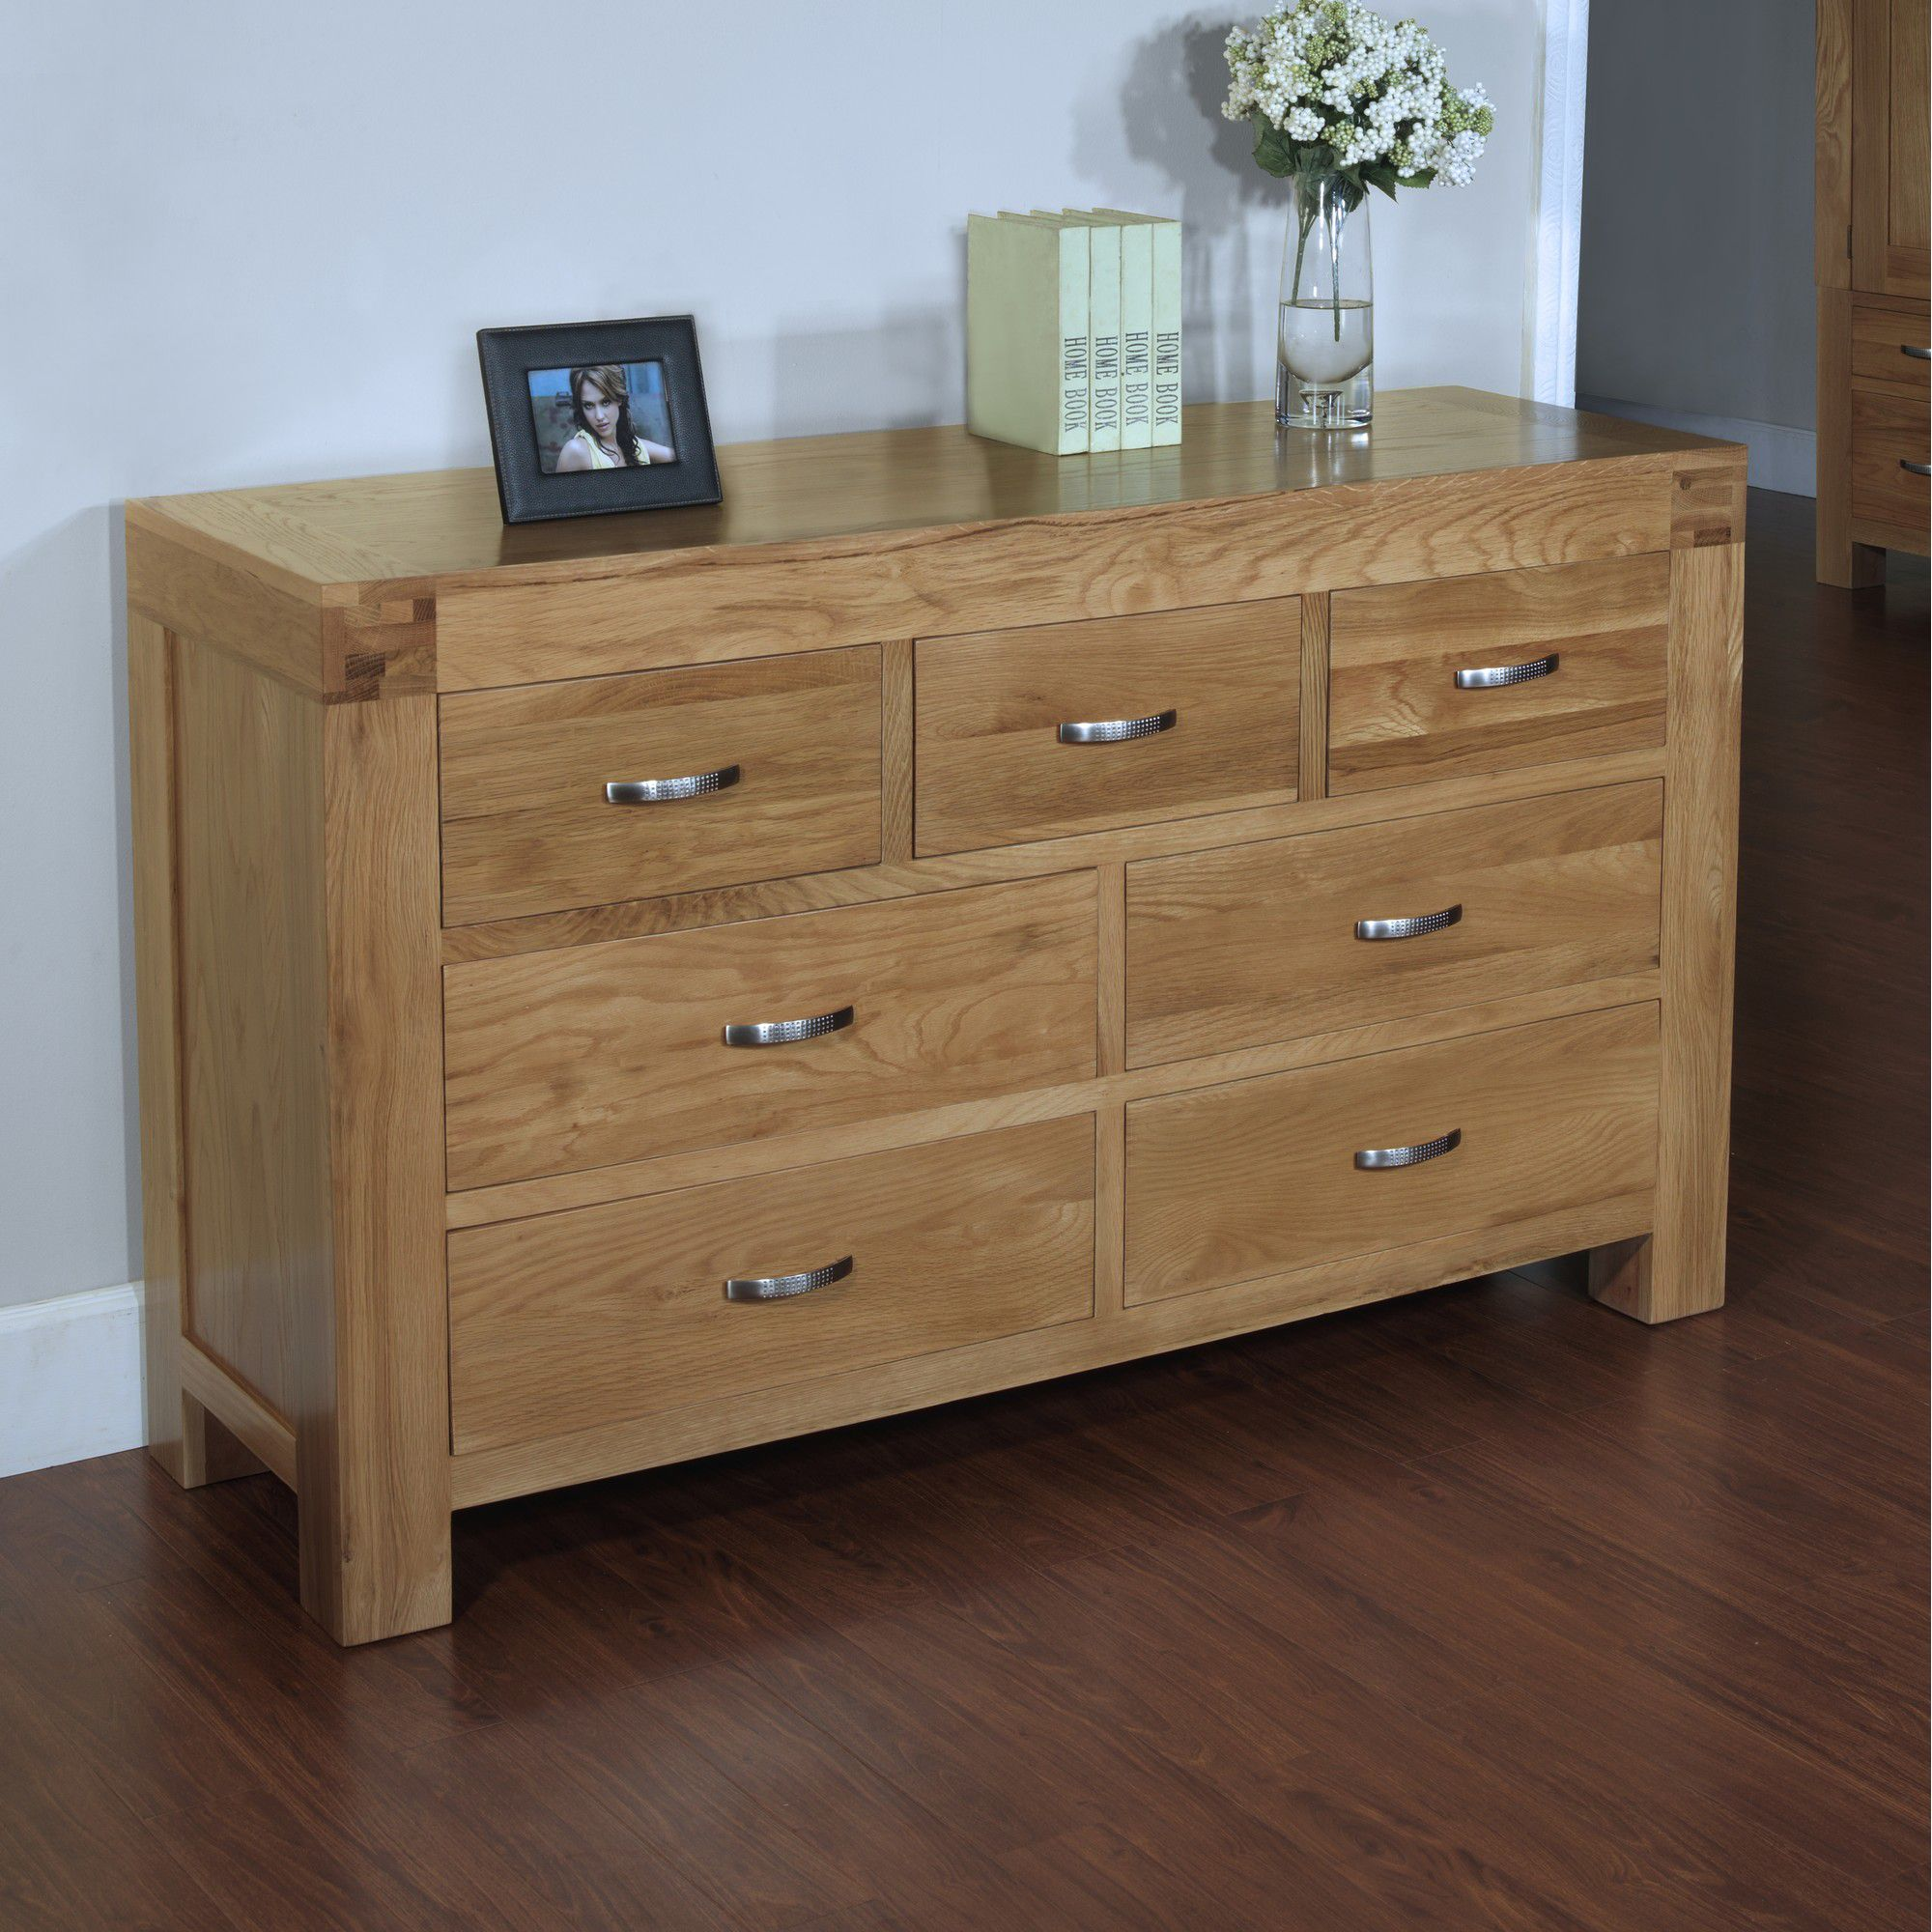 Hawkshead Rustic Oak Blonde 7 Drawer Chest at Tesco Direct